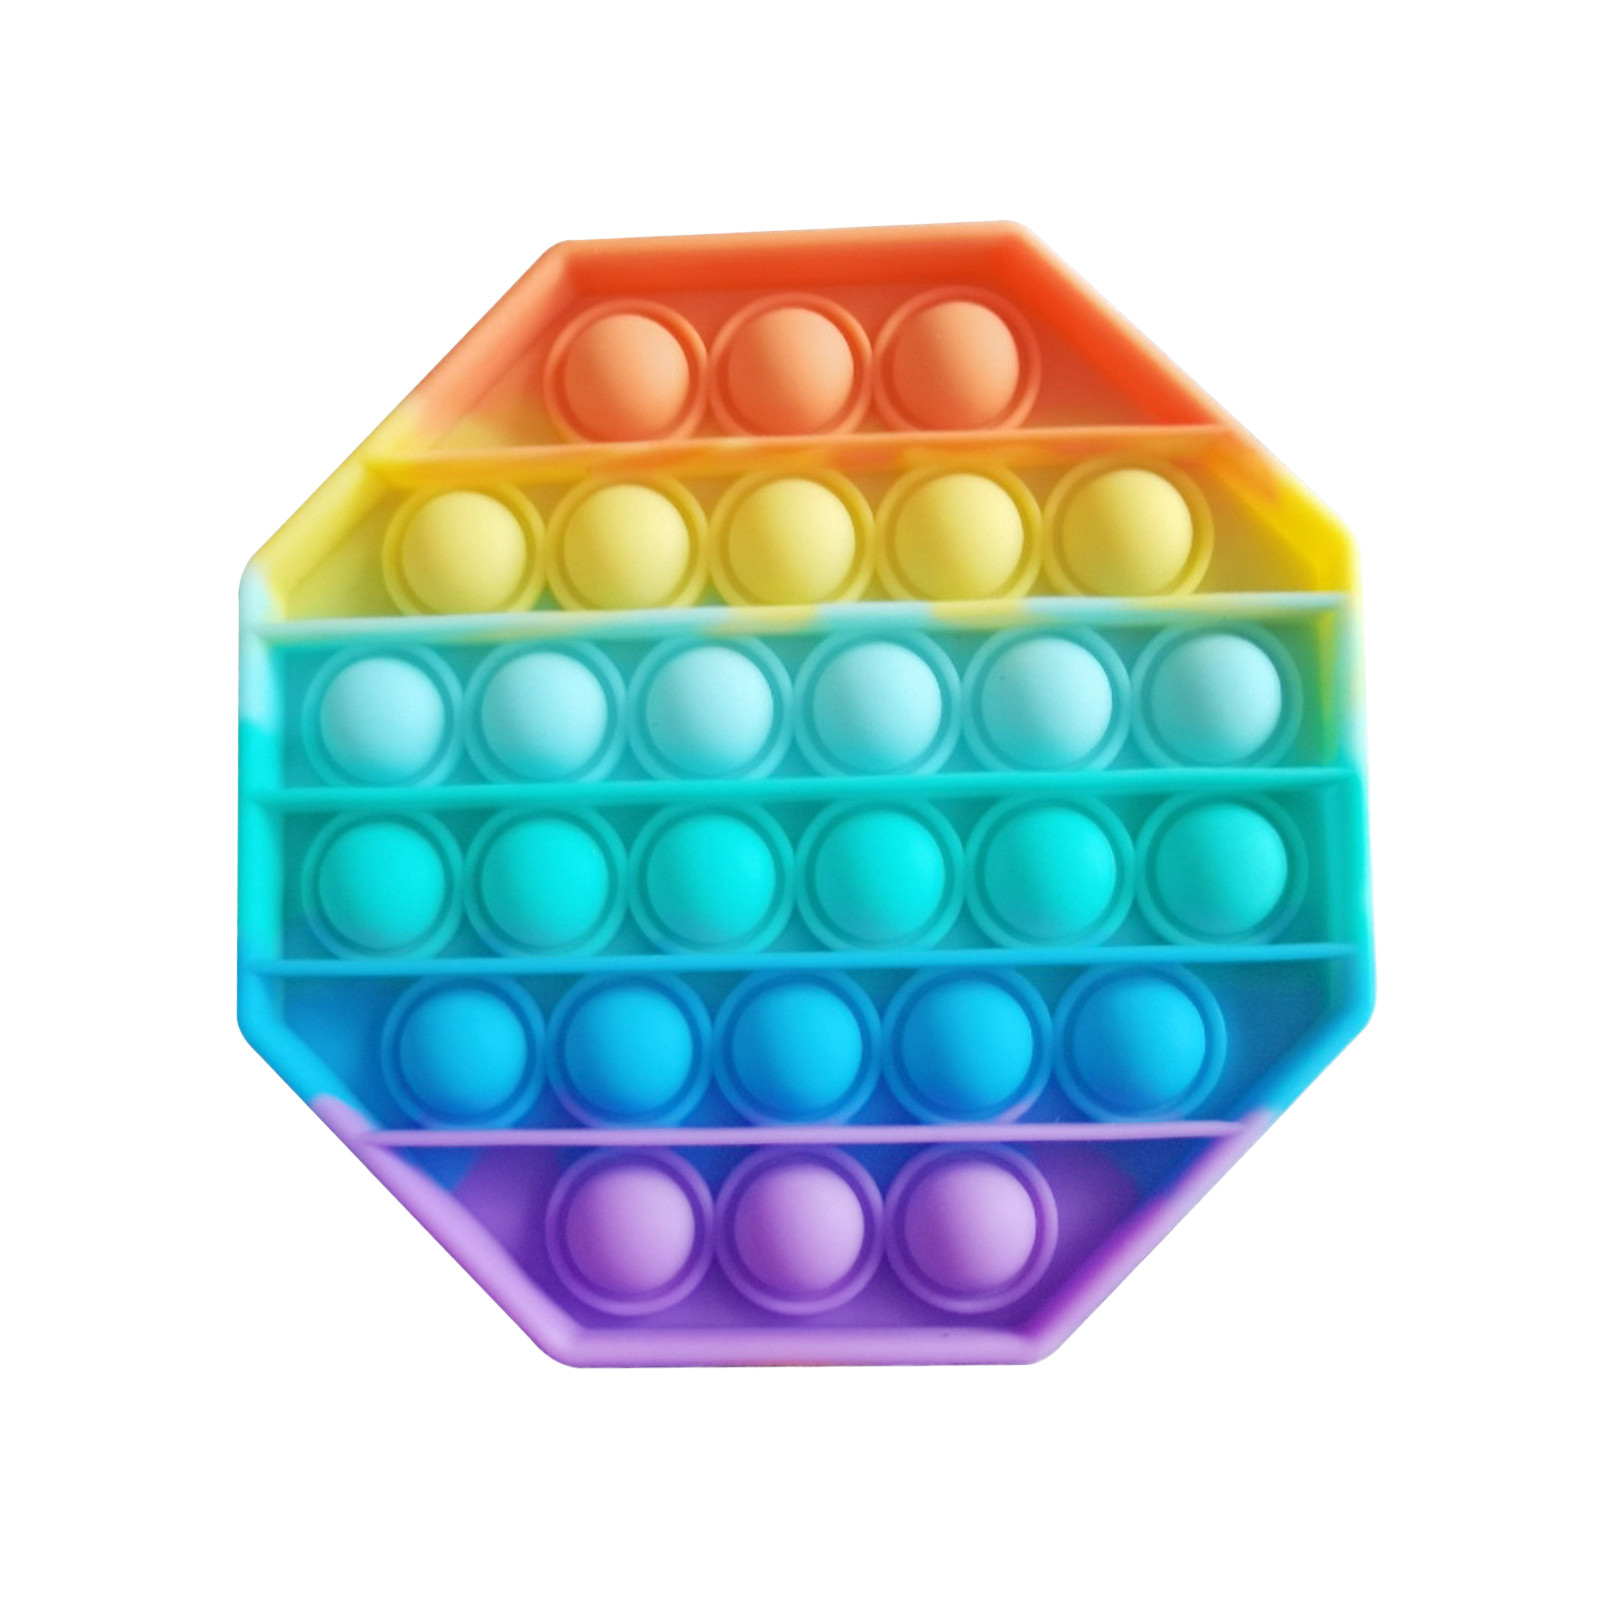 Reliever-Toy Rainbow Fidget It-Bubble-Sensory Emotions-Stress Push-Pop Anxiety for OCD img4